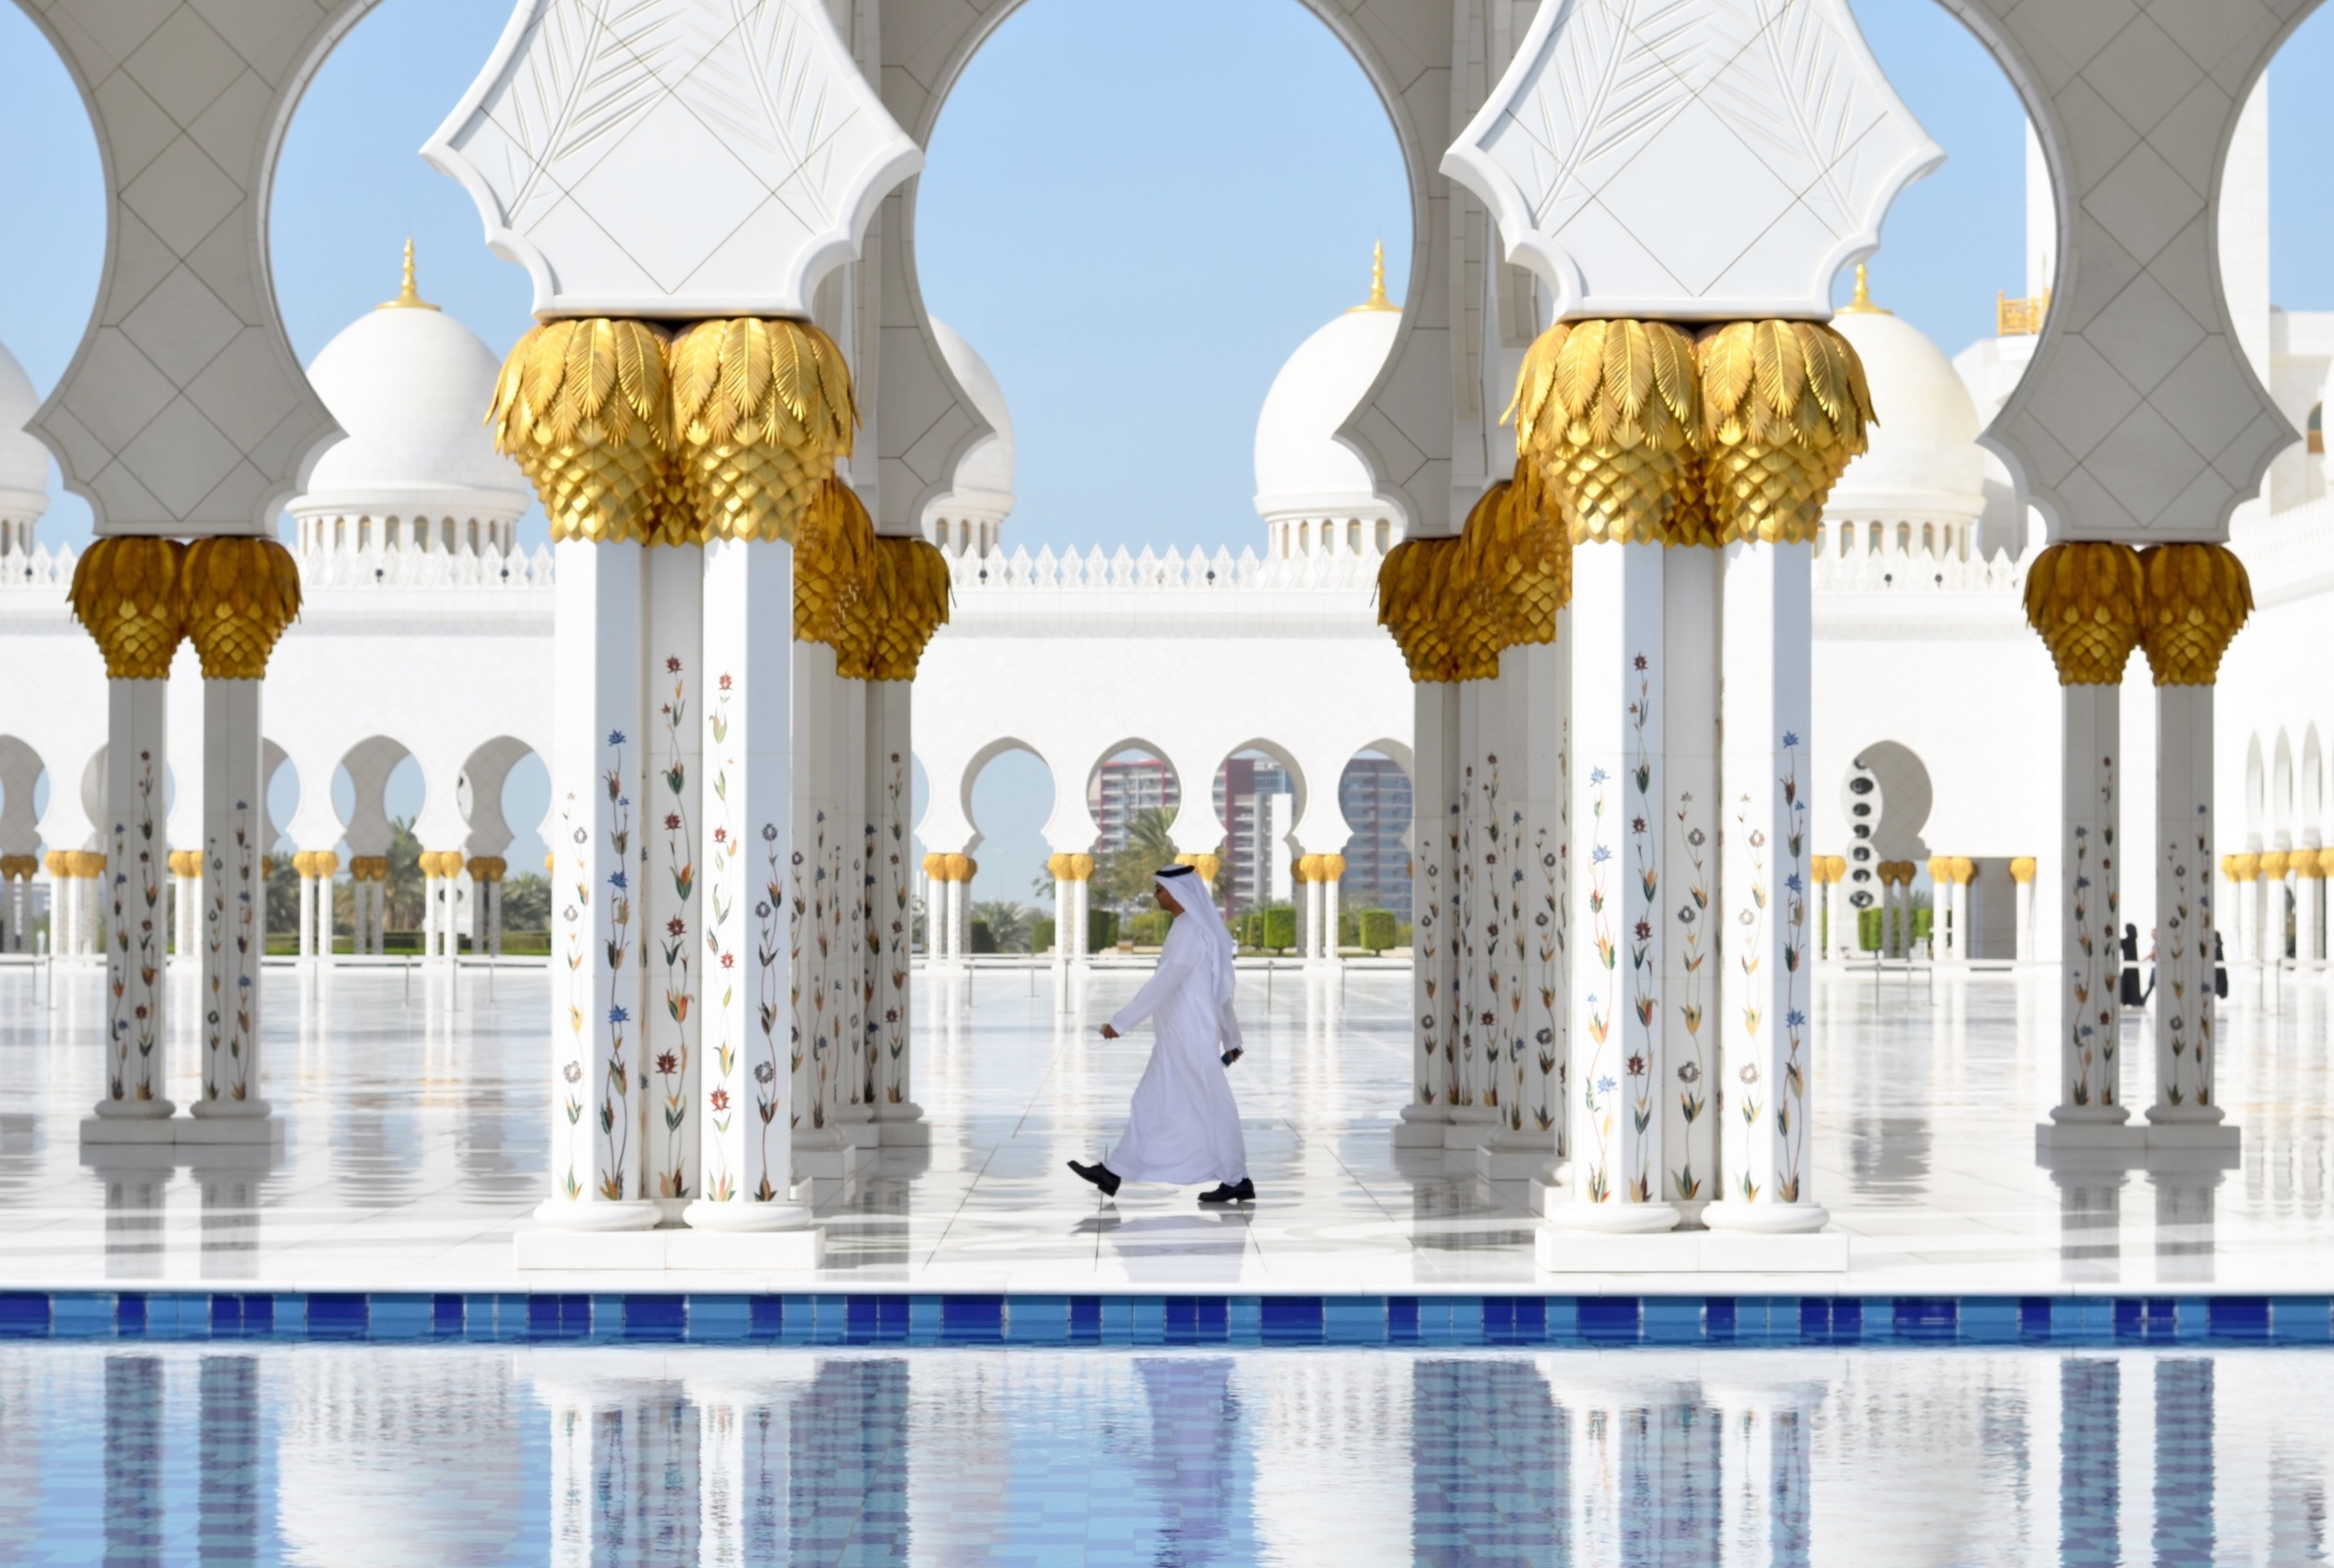 A local man walks in to the Sheikh Ziyad Grand Mosque in Abu Dhabi